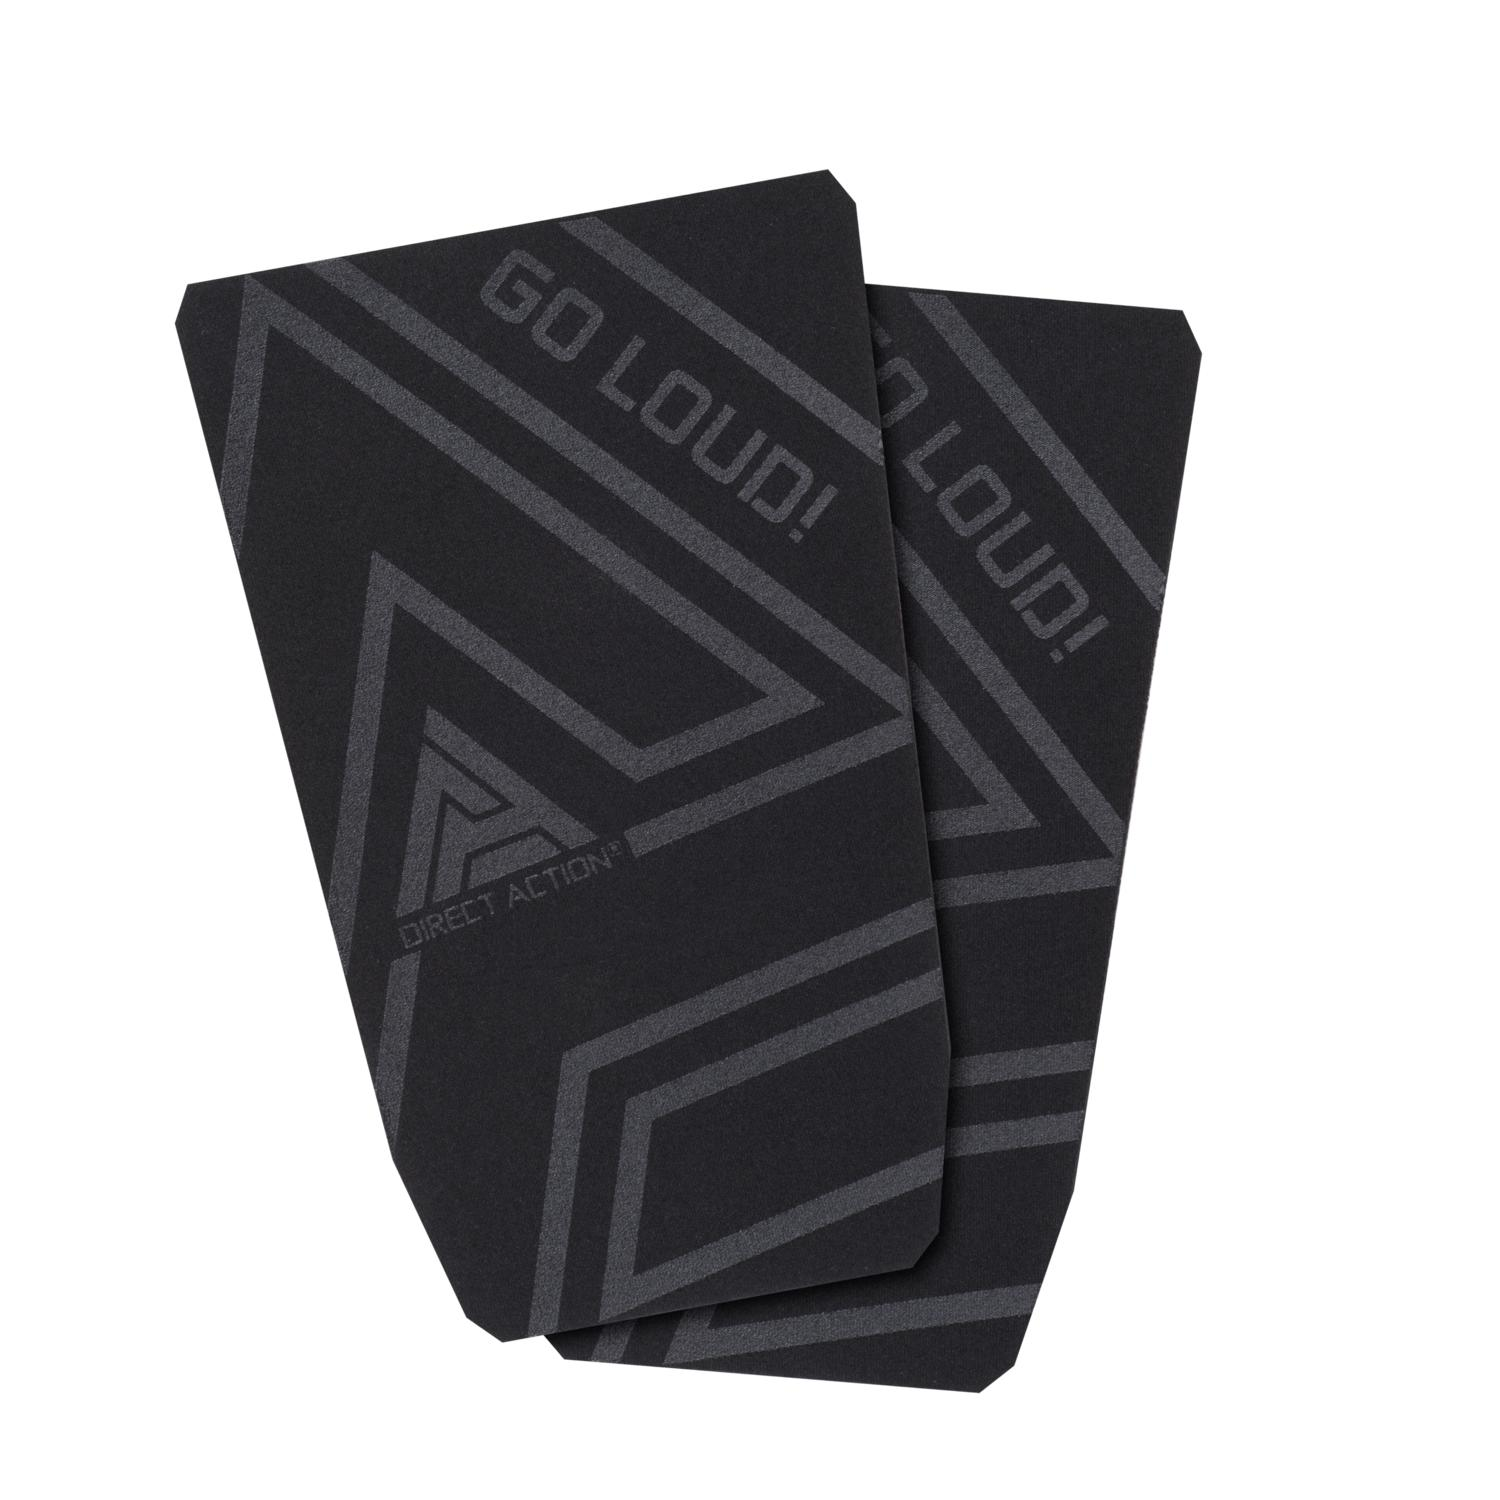 D.A. Protective Pad Inserts